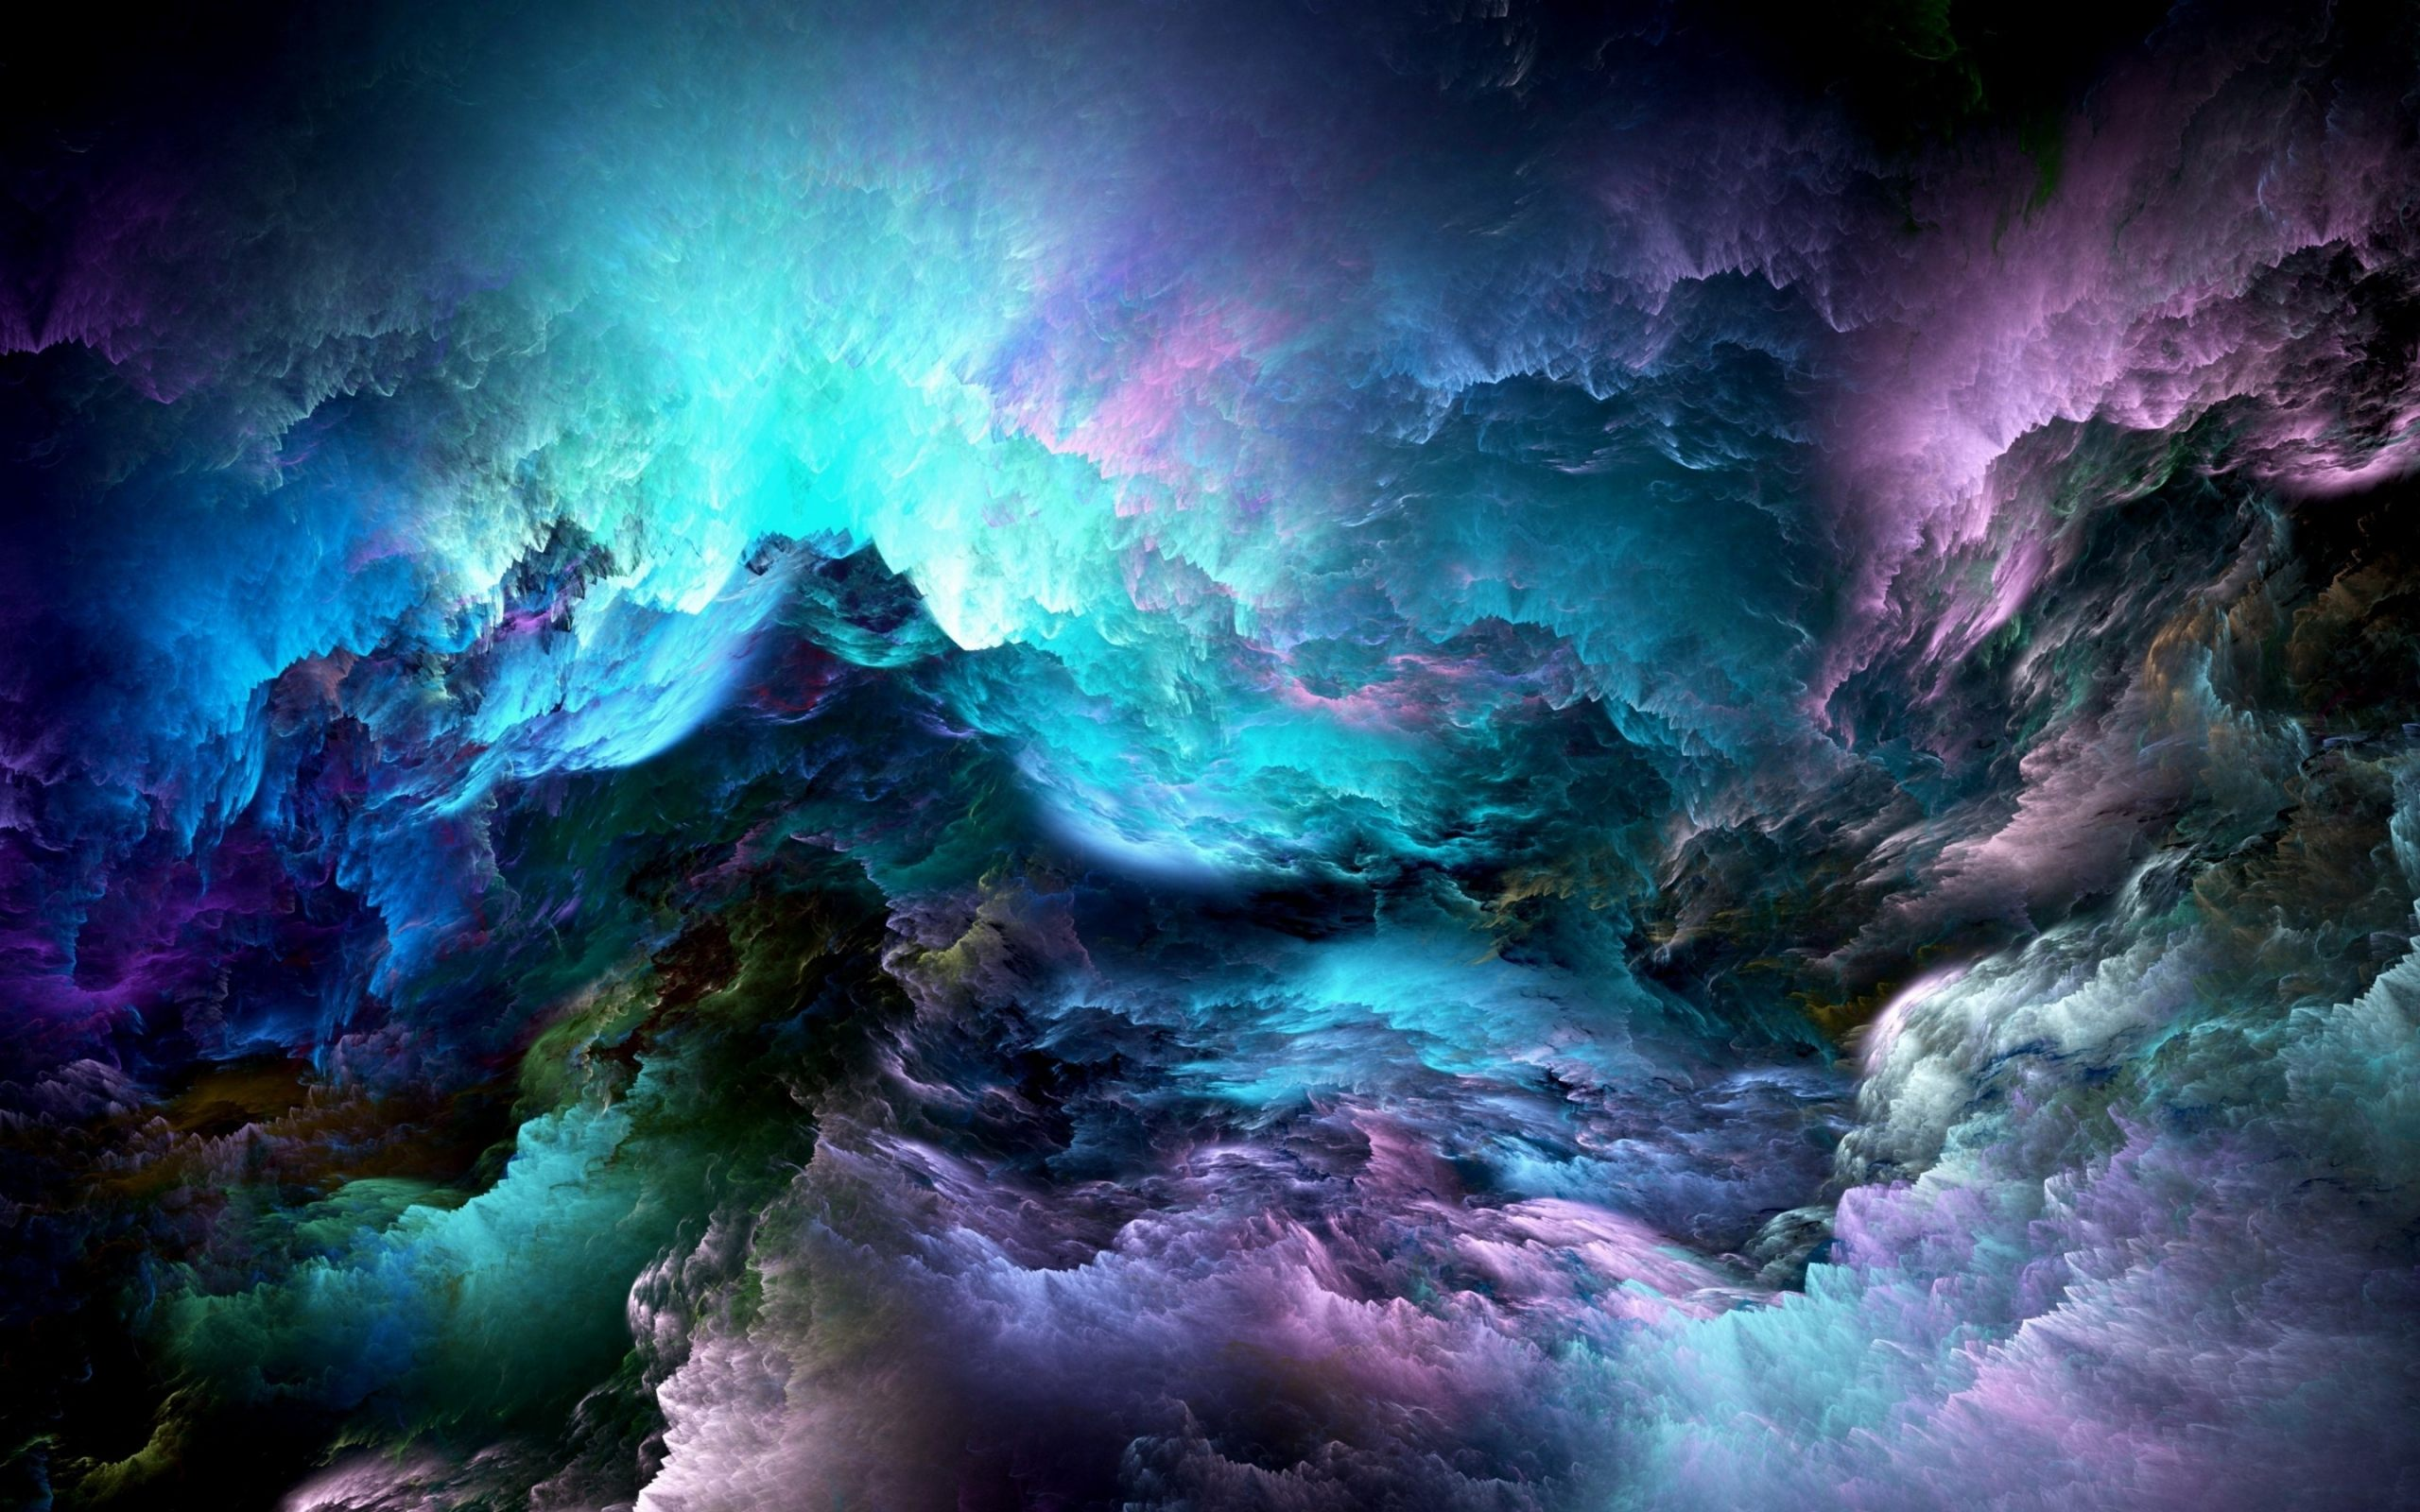 Abstract Art Wallpapers | HD Background Images | Photos | Pictures – YL  Computing